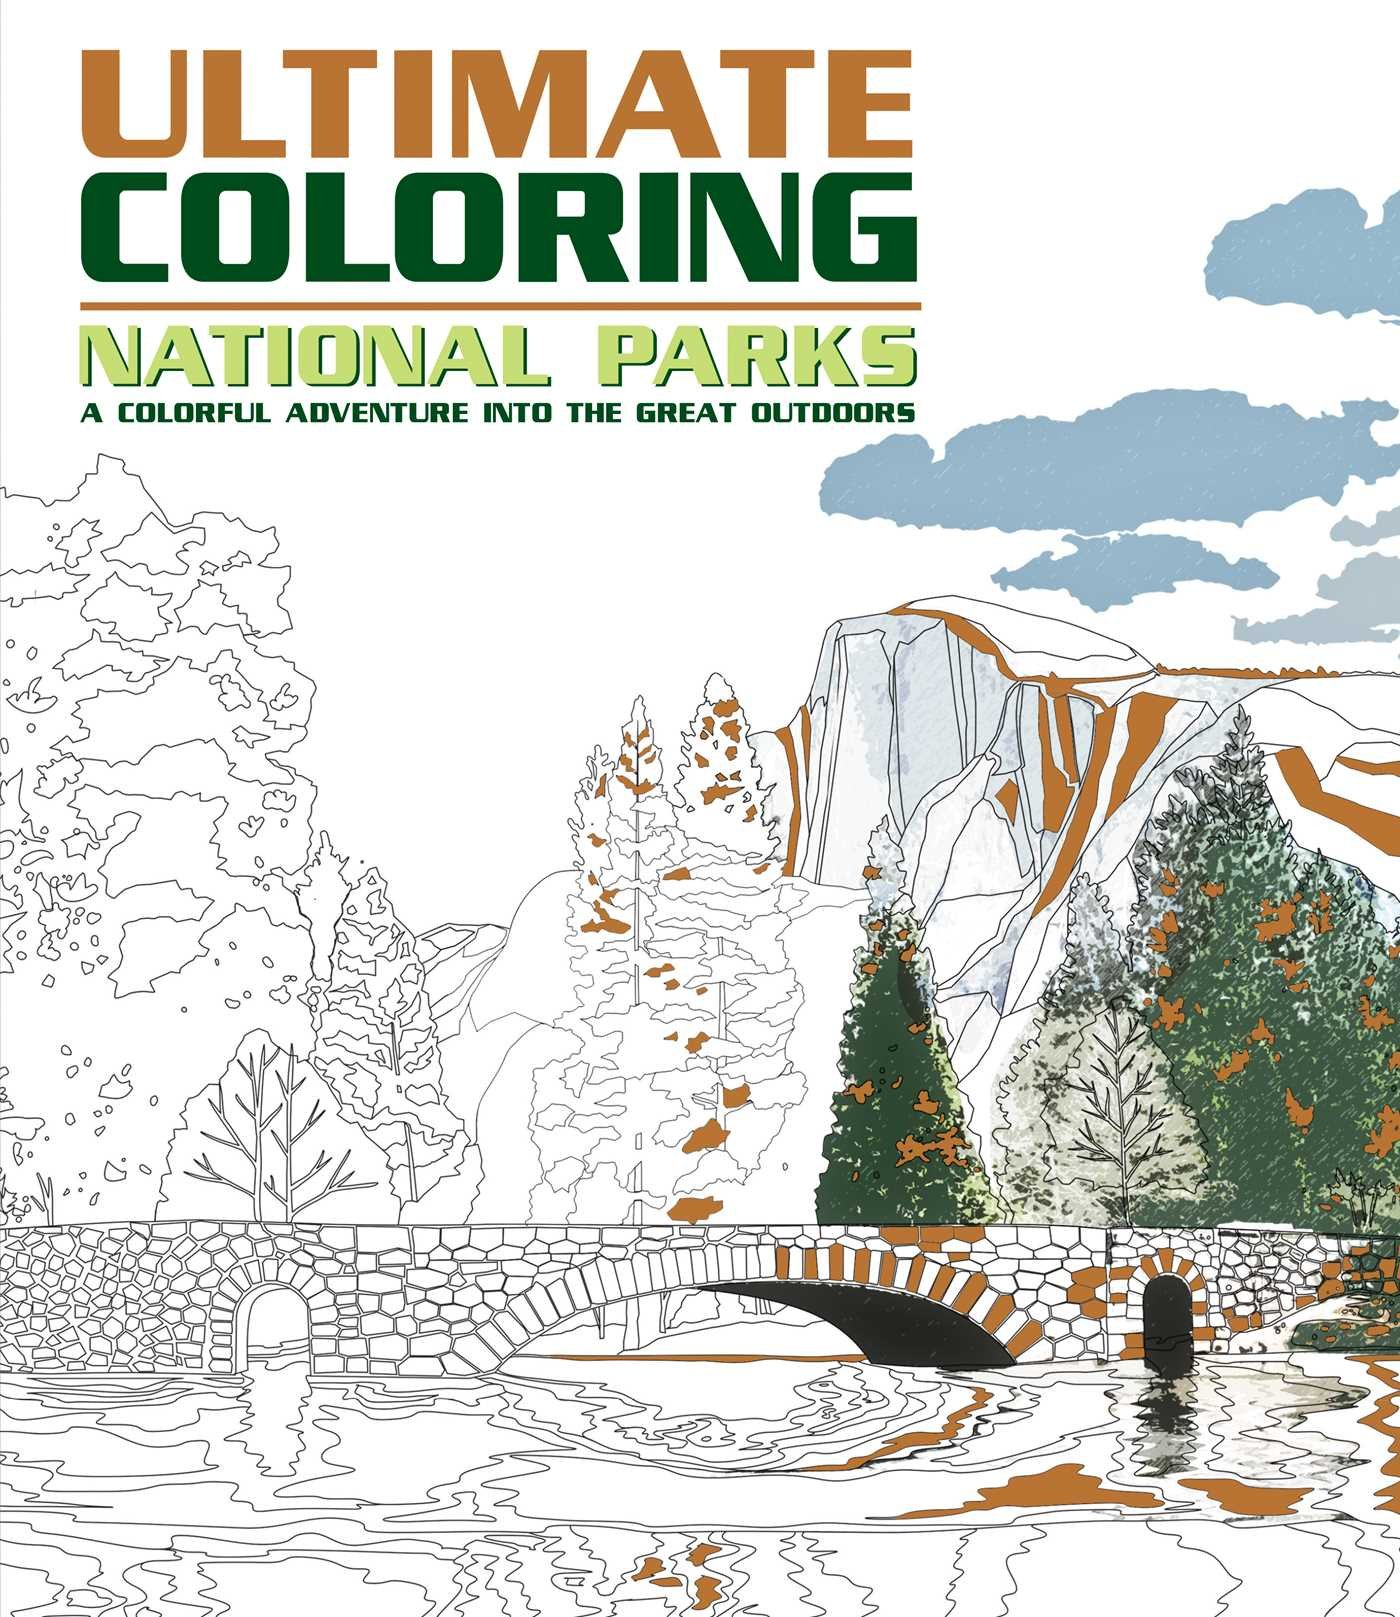 Ultimate Coloring National Parks: A Colorful Adventure Into the Great Outdoors